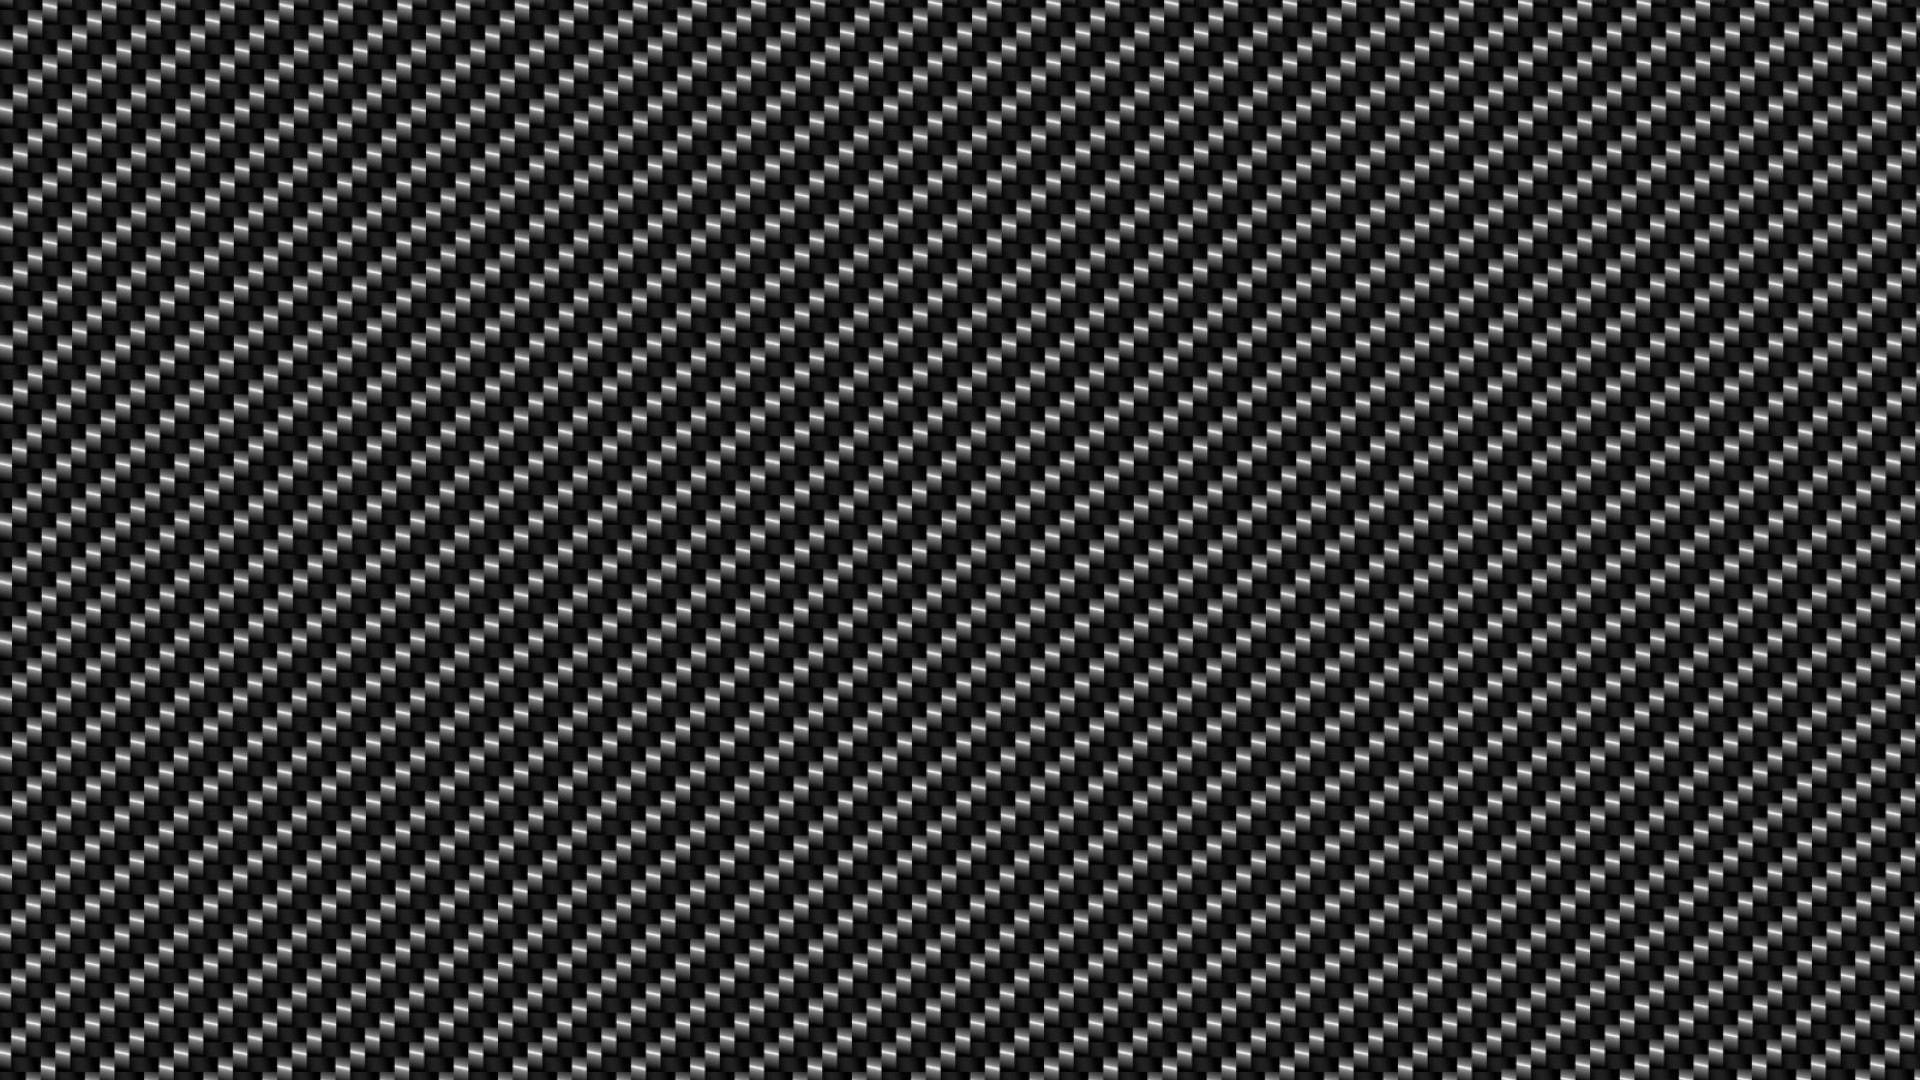 Awesome-Carbon-Wall-Carbon-wallpaper-wpc5802402